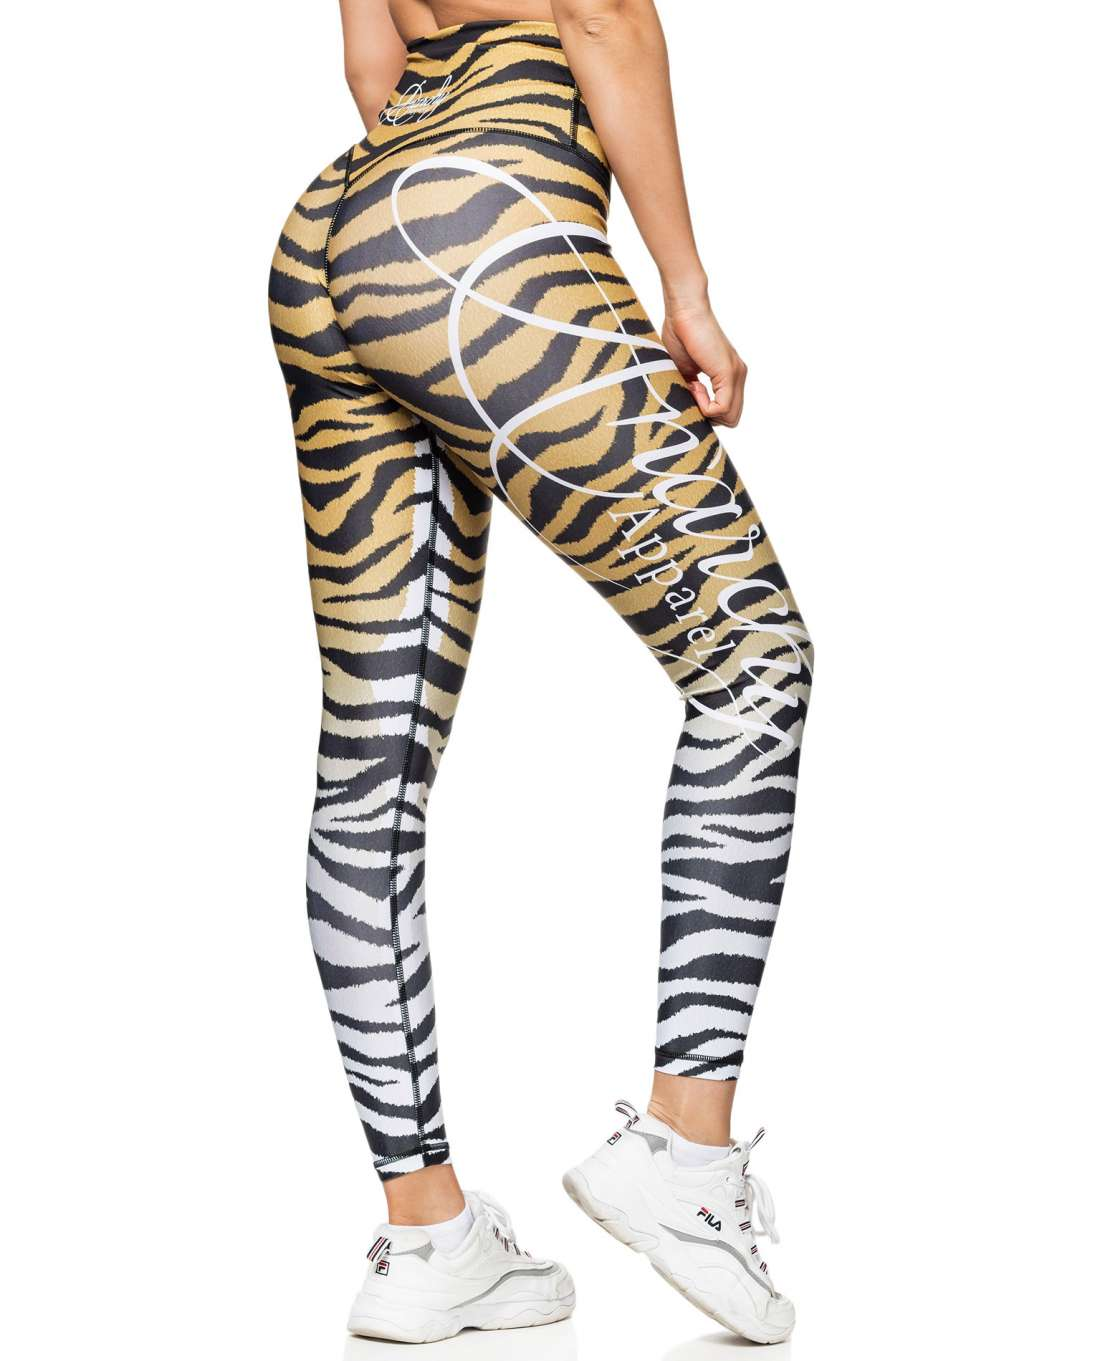 Tigress Tights Anarchy Apparel